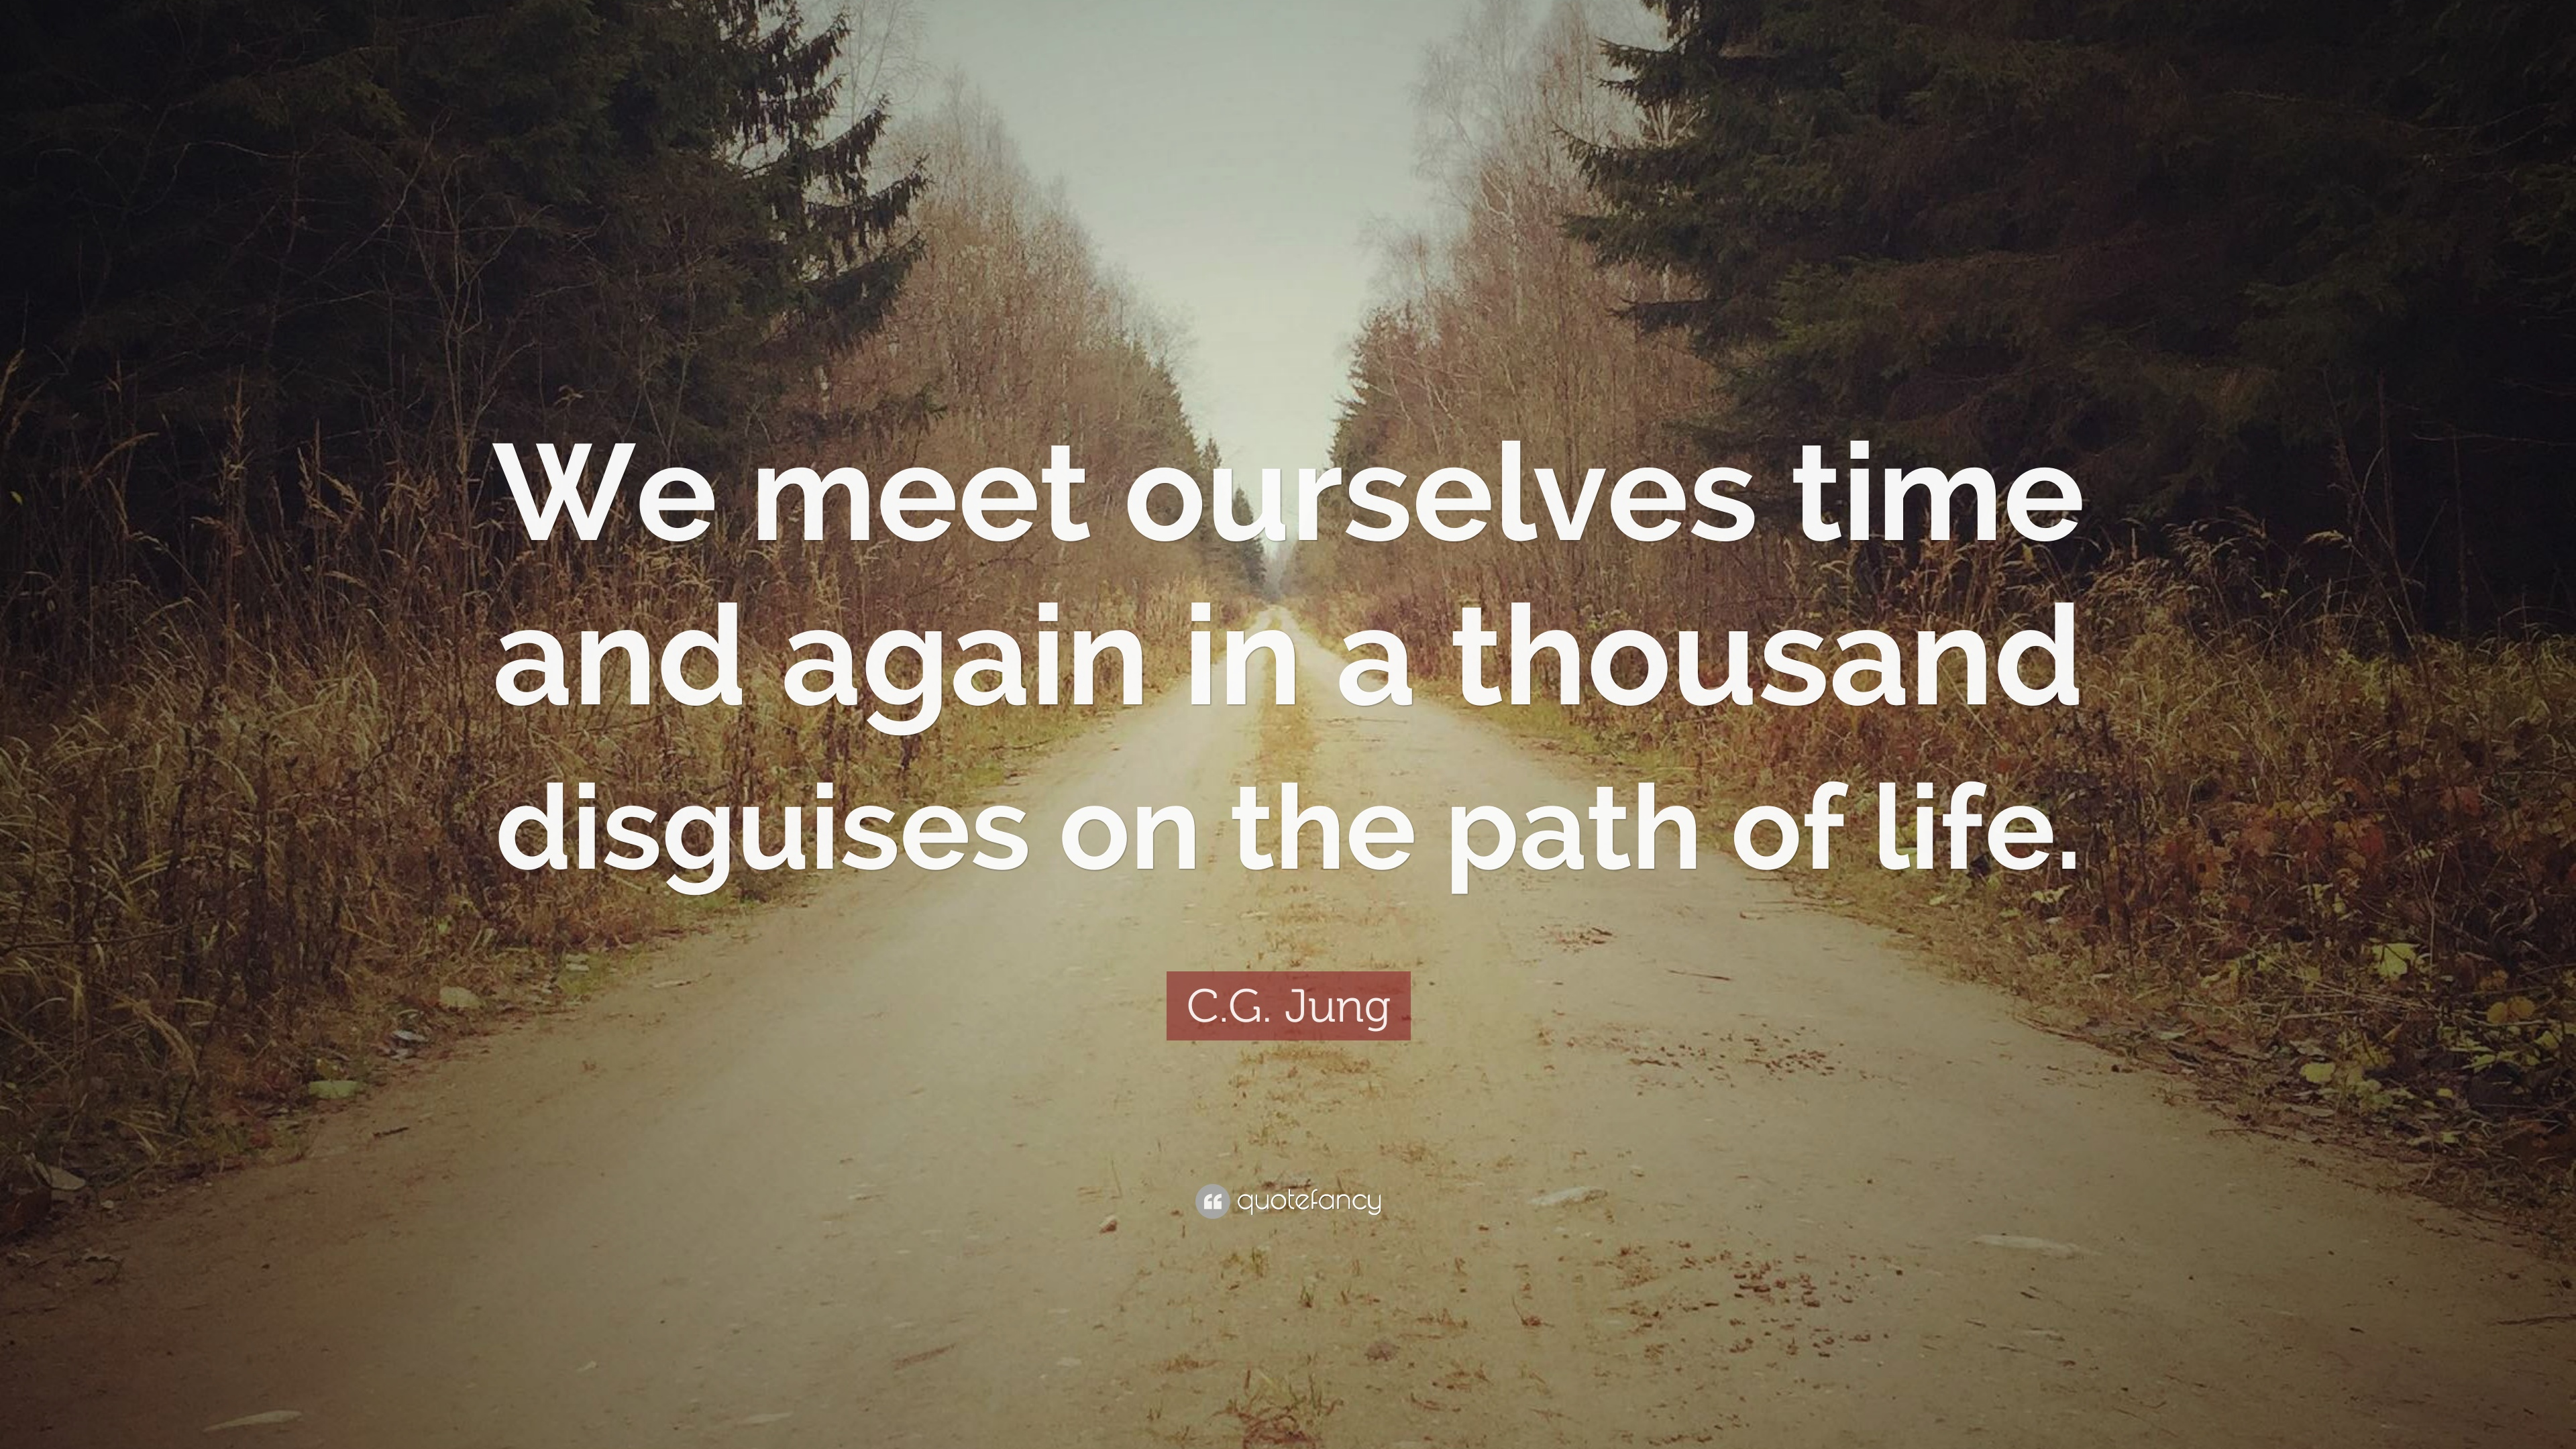 Law Of Attraction Quotes: U201cWe Meet Ourselves Time And Again In A Thousand  Disguises